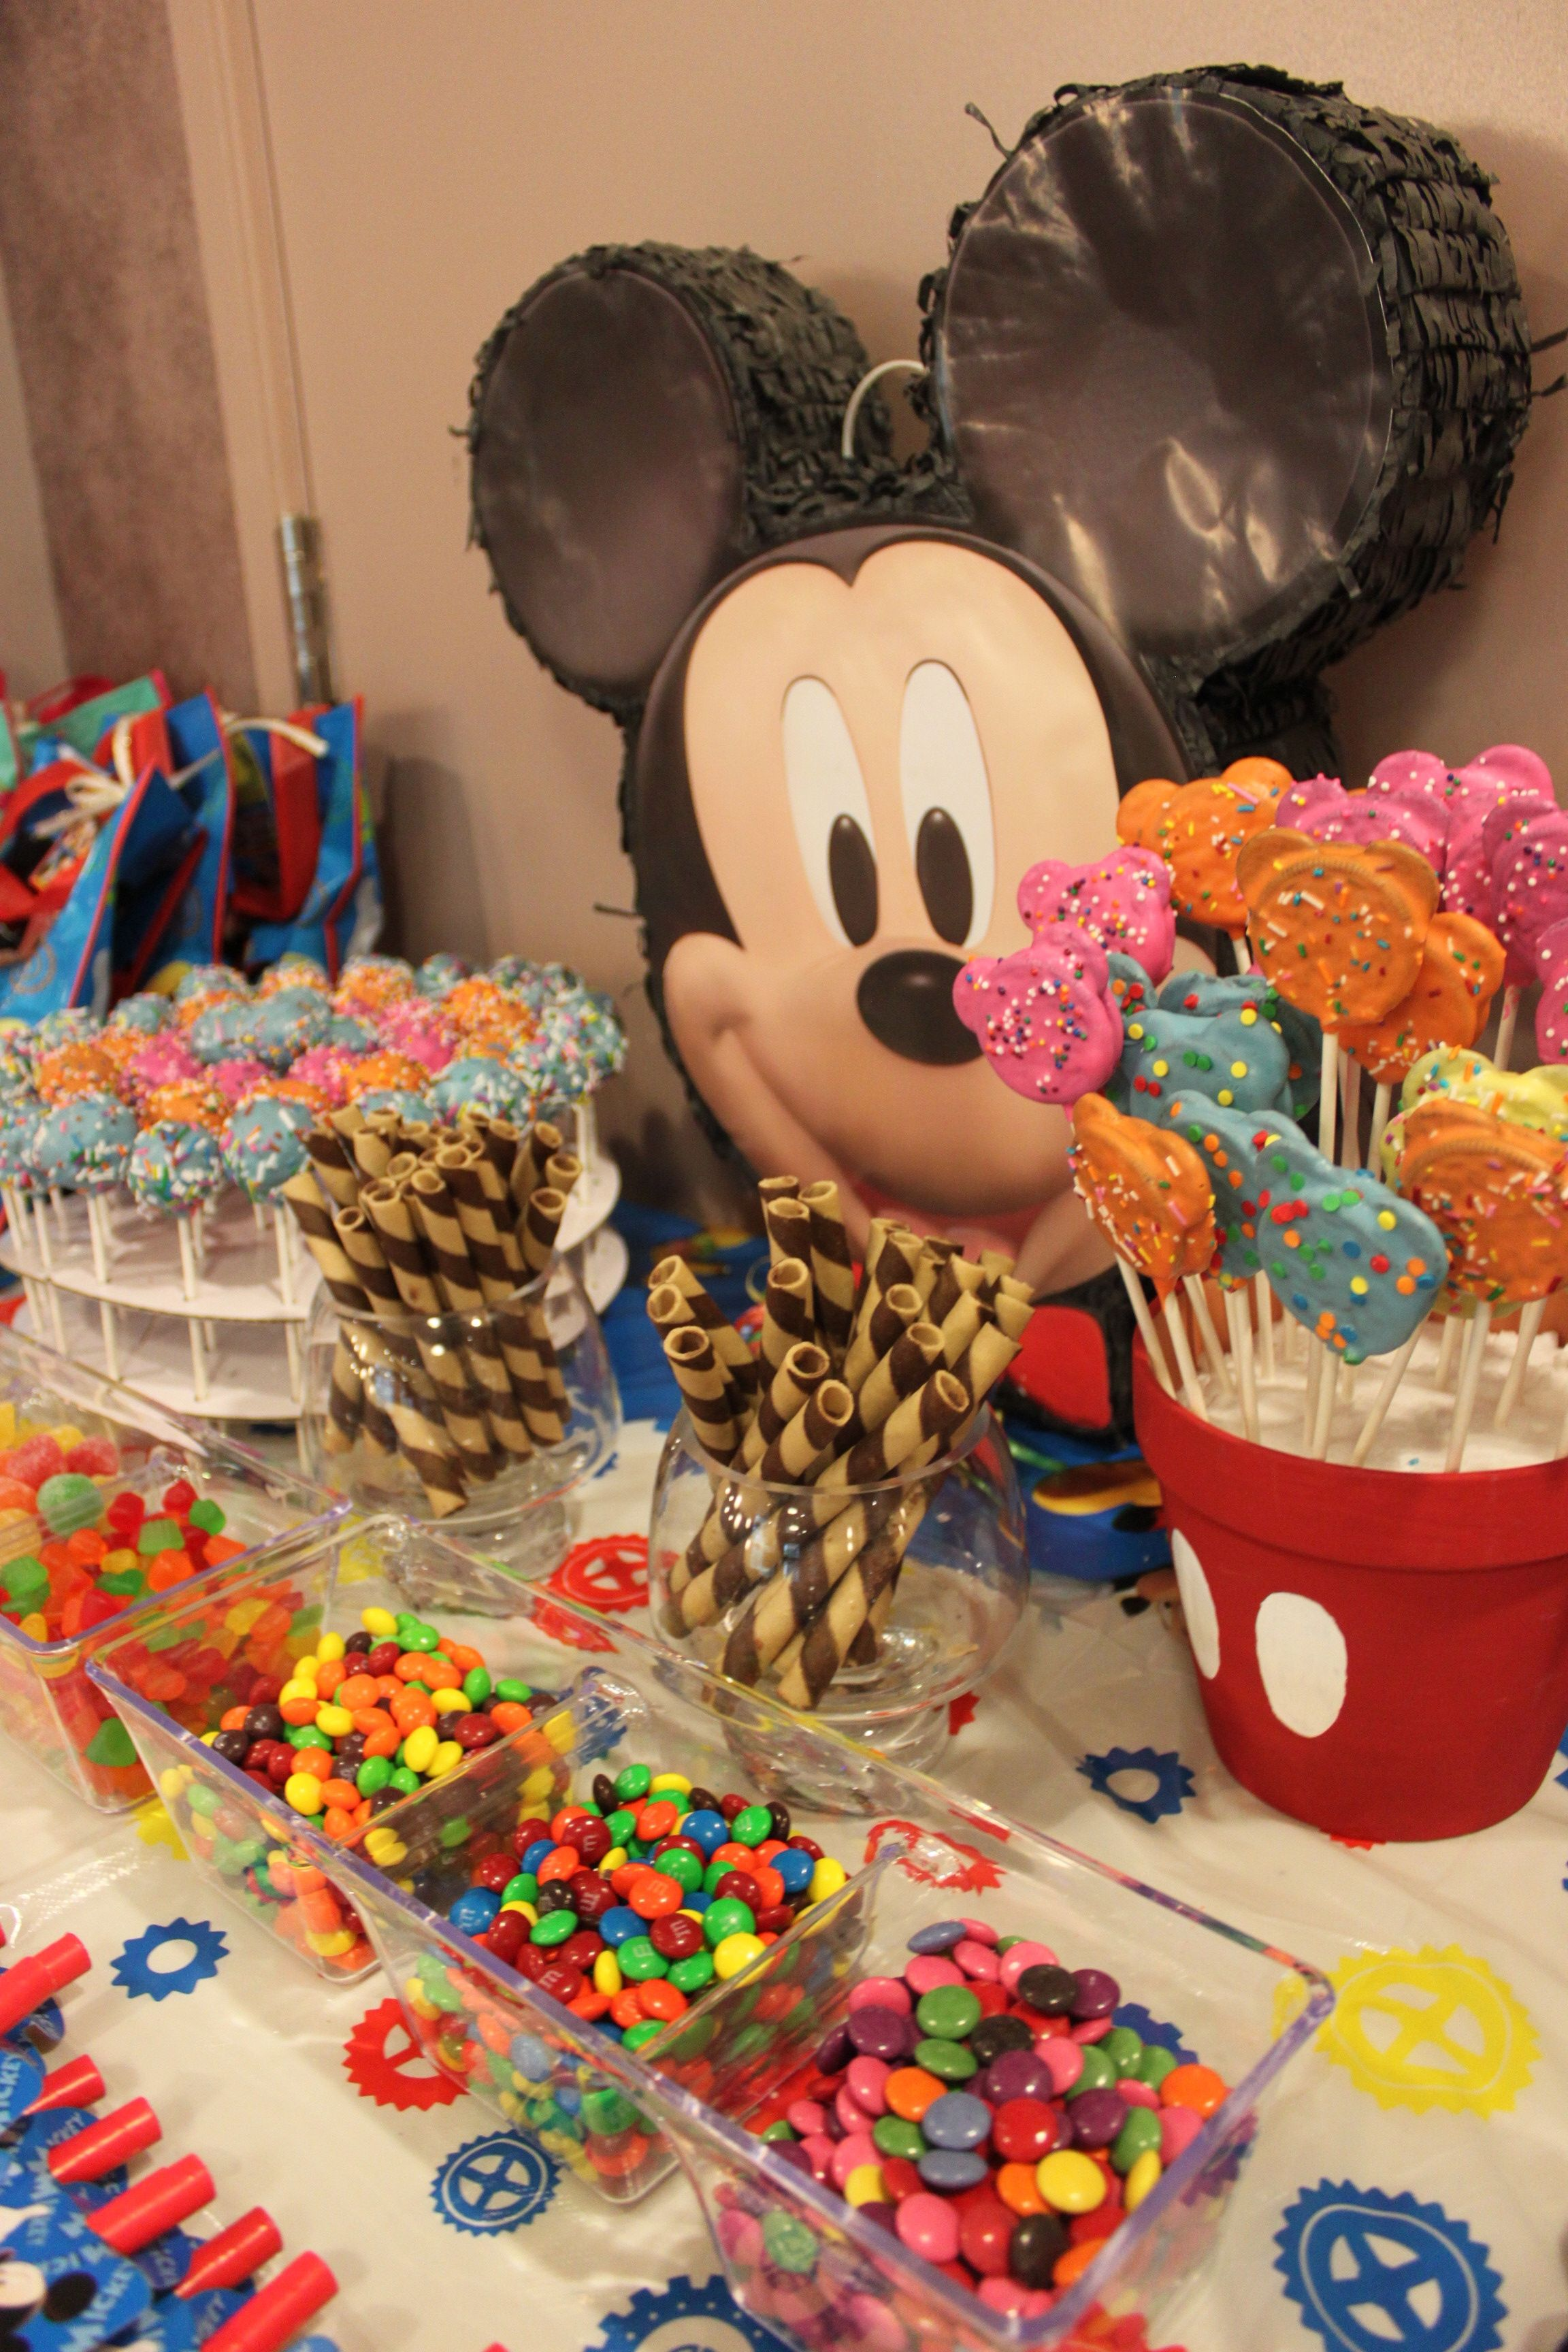 Candy Buffet Fun Filled Goodies For Kids Mickey 1st Birthdays Mickey Mouse Clubhouse Birthday Party Decorations Fiesta Mickey Mouse